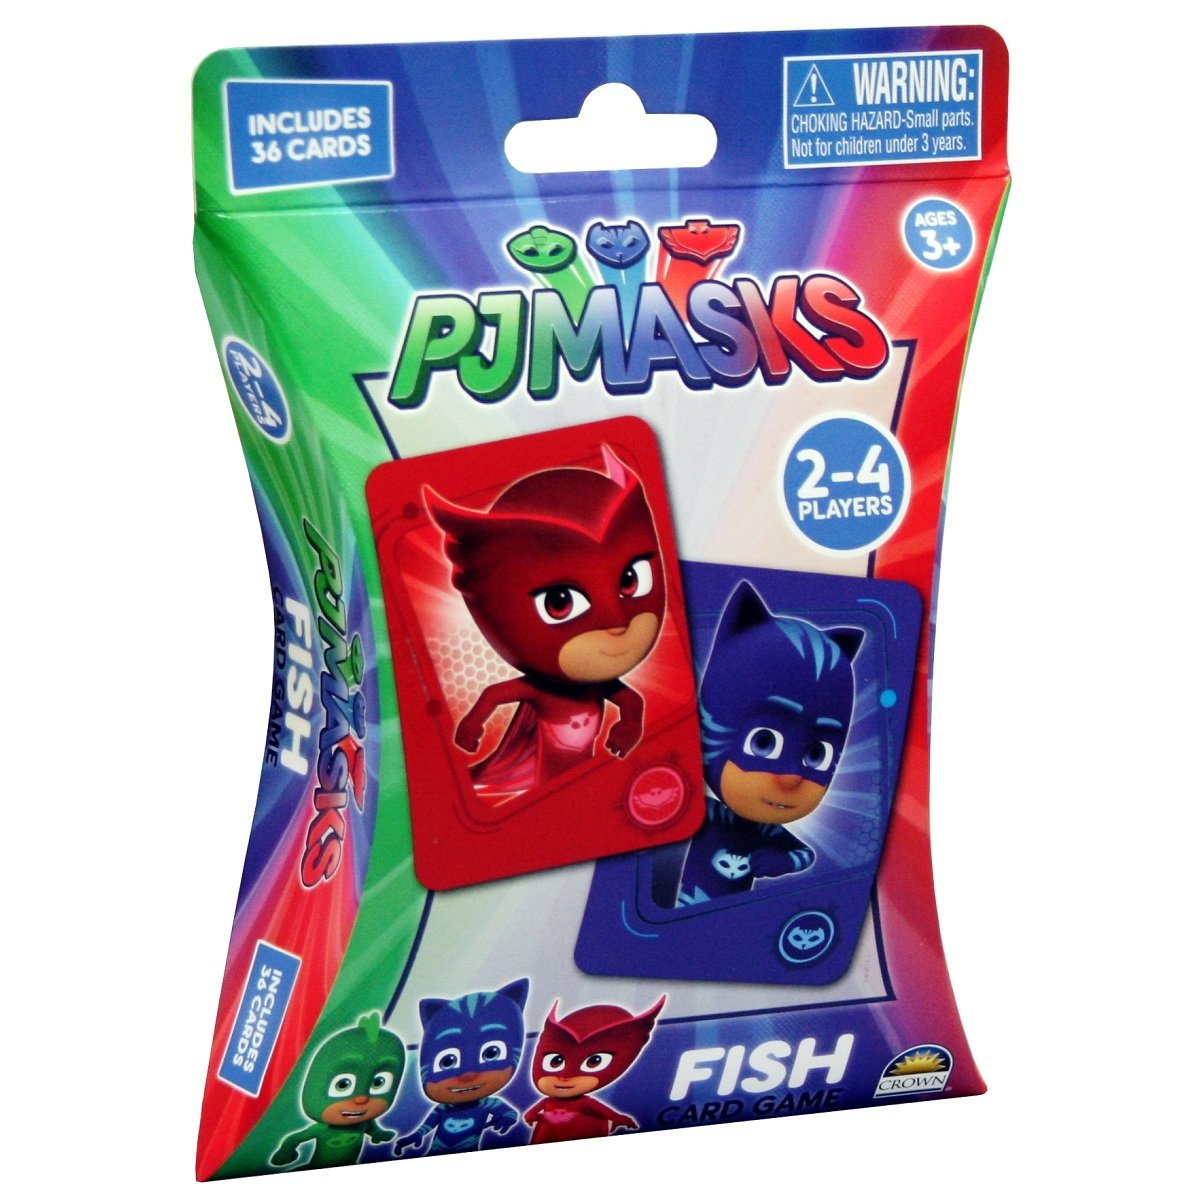 9317762177224 - PJ Masks Fish Card Game